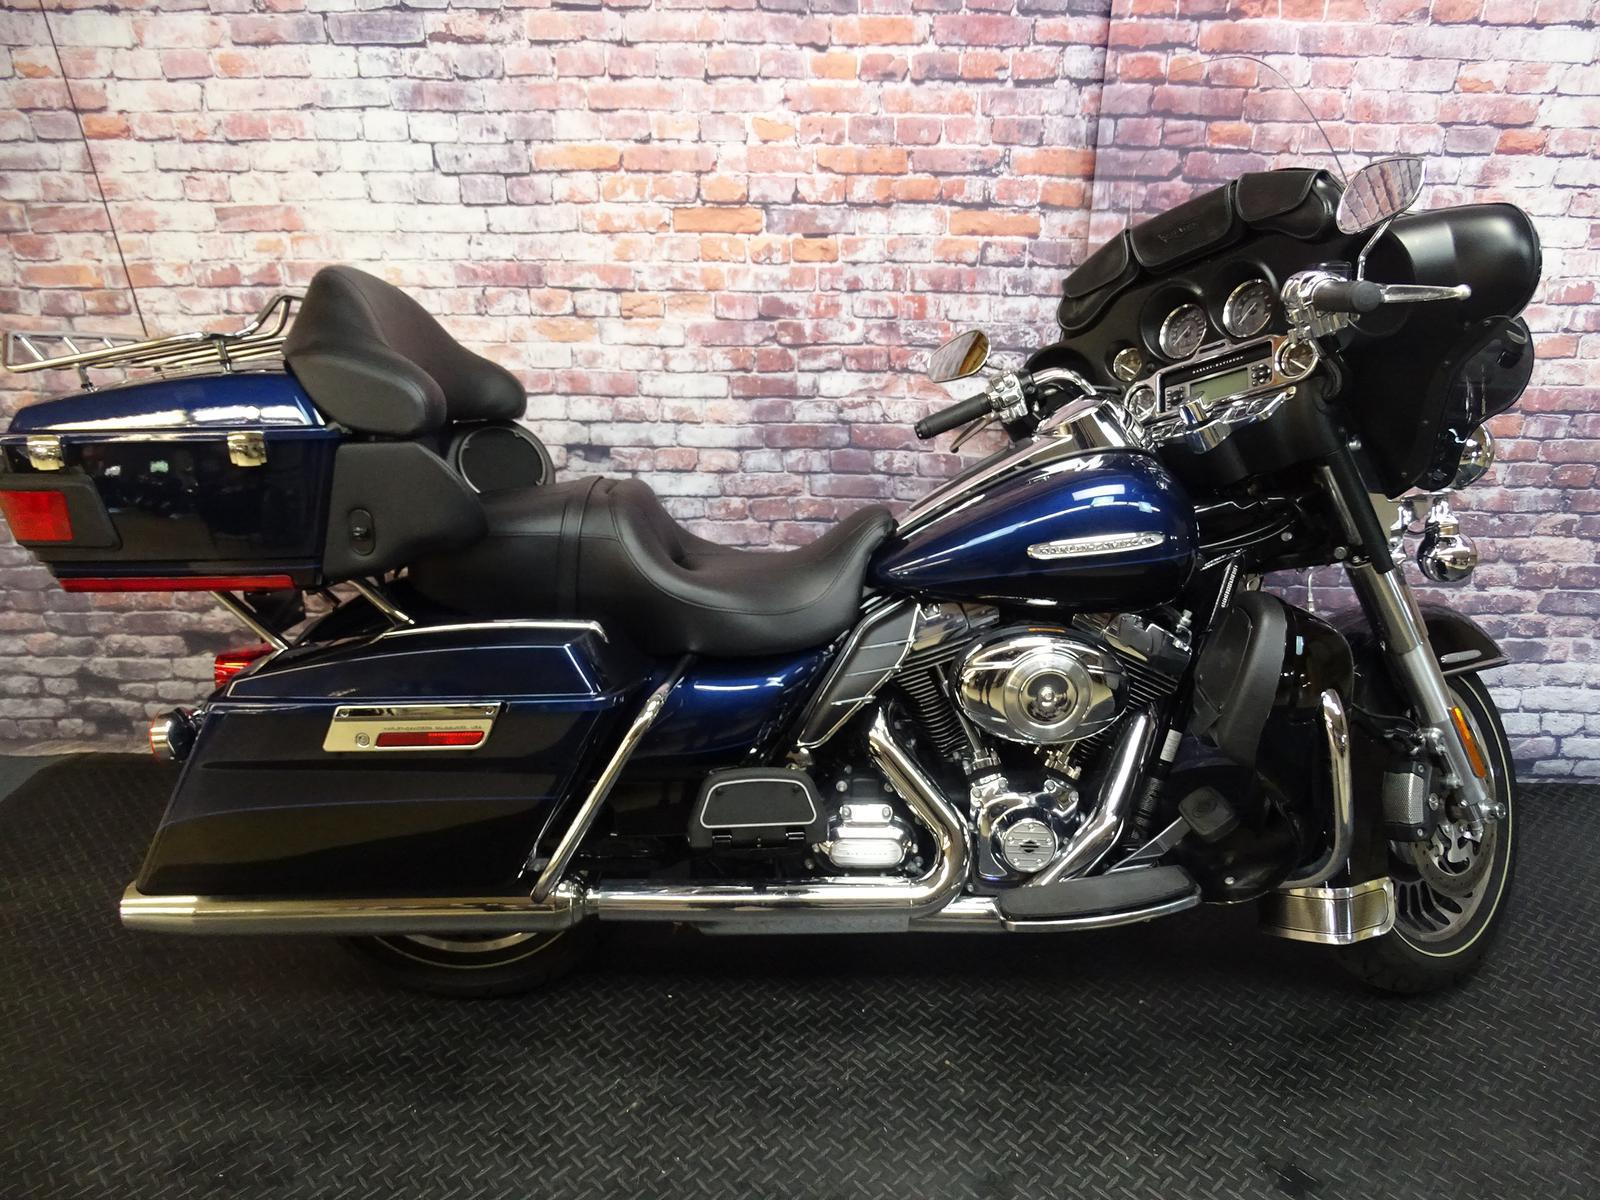 2012 Harley Davidson Flhtk Ultra Limited For Sale In Manitowoc Starting At1549900 Harbor Town